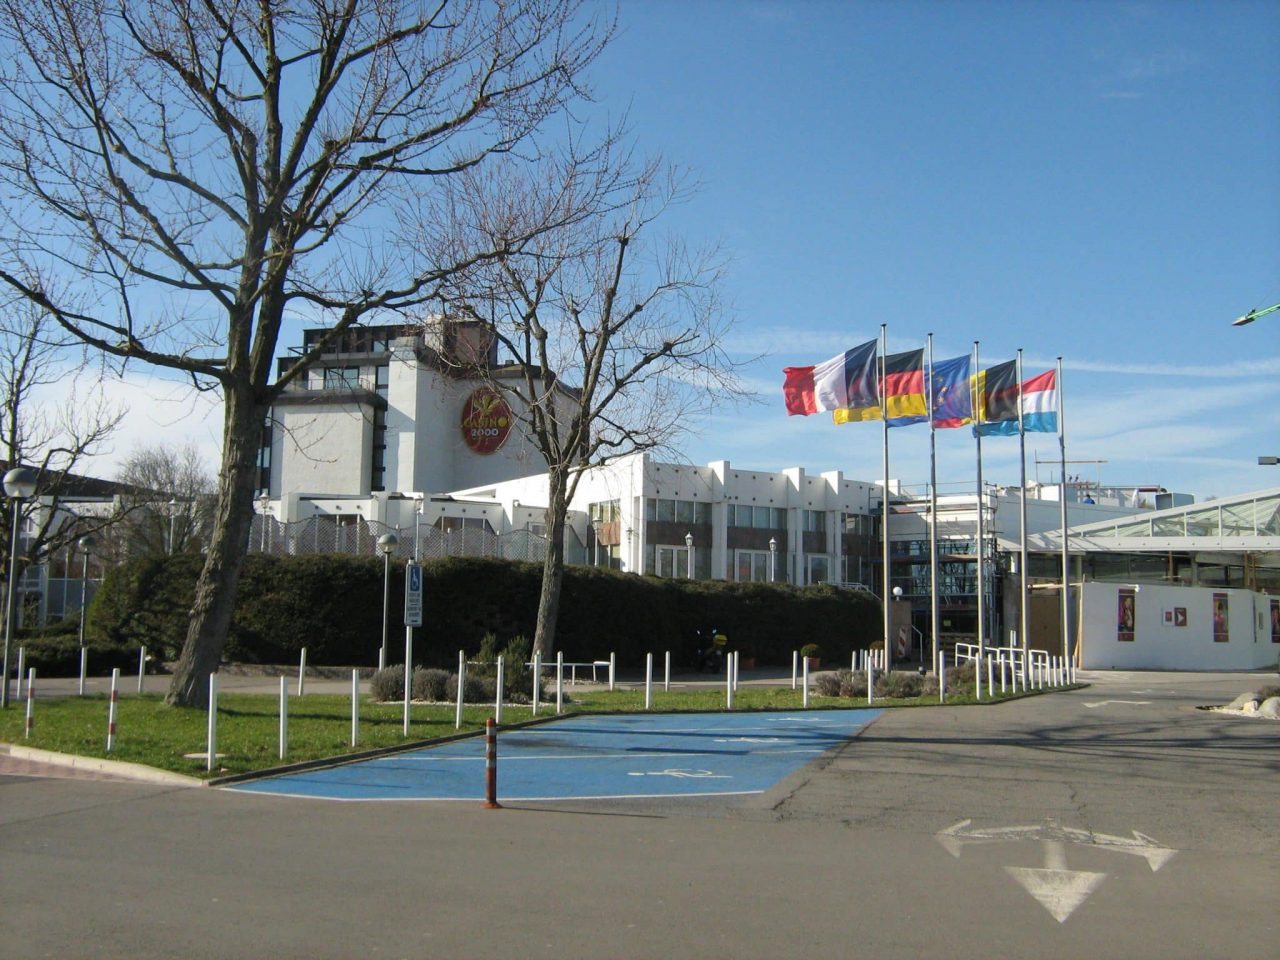 This is a picture of Casino 2000, Luxembourg's only licensed brick and mortar casino. You can read about the laws of online gambling, bitcoin gambling, sports betting, lottery, poker, bingo in Luxembourg under the picture.